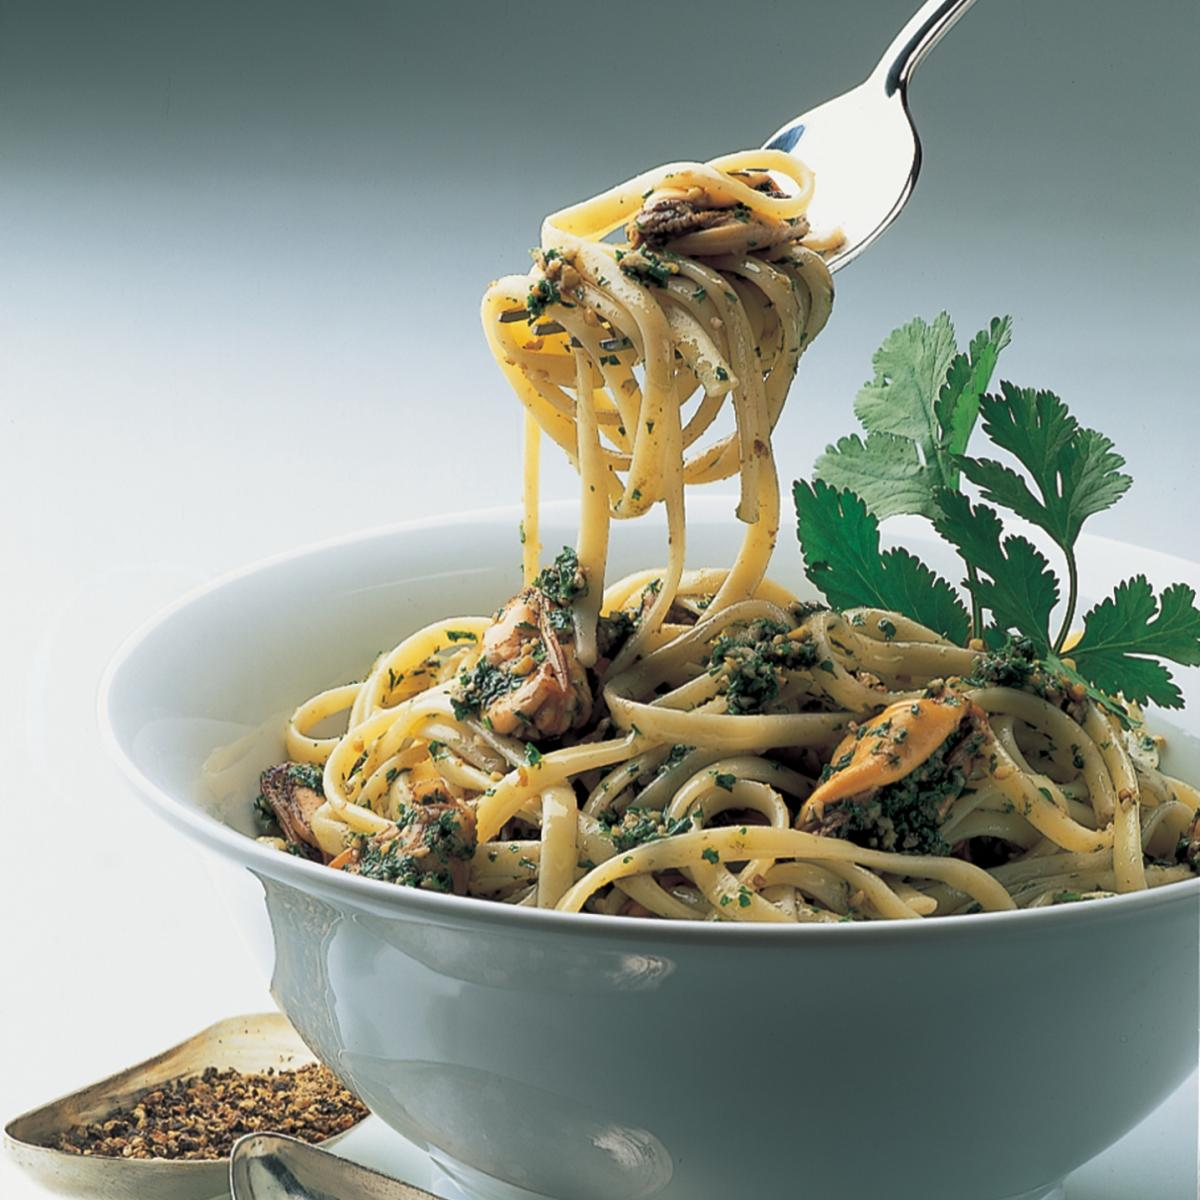 A picture of Delia's Linguine with Mussels and Walnut Parsley Pesto recipe